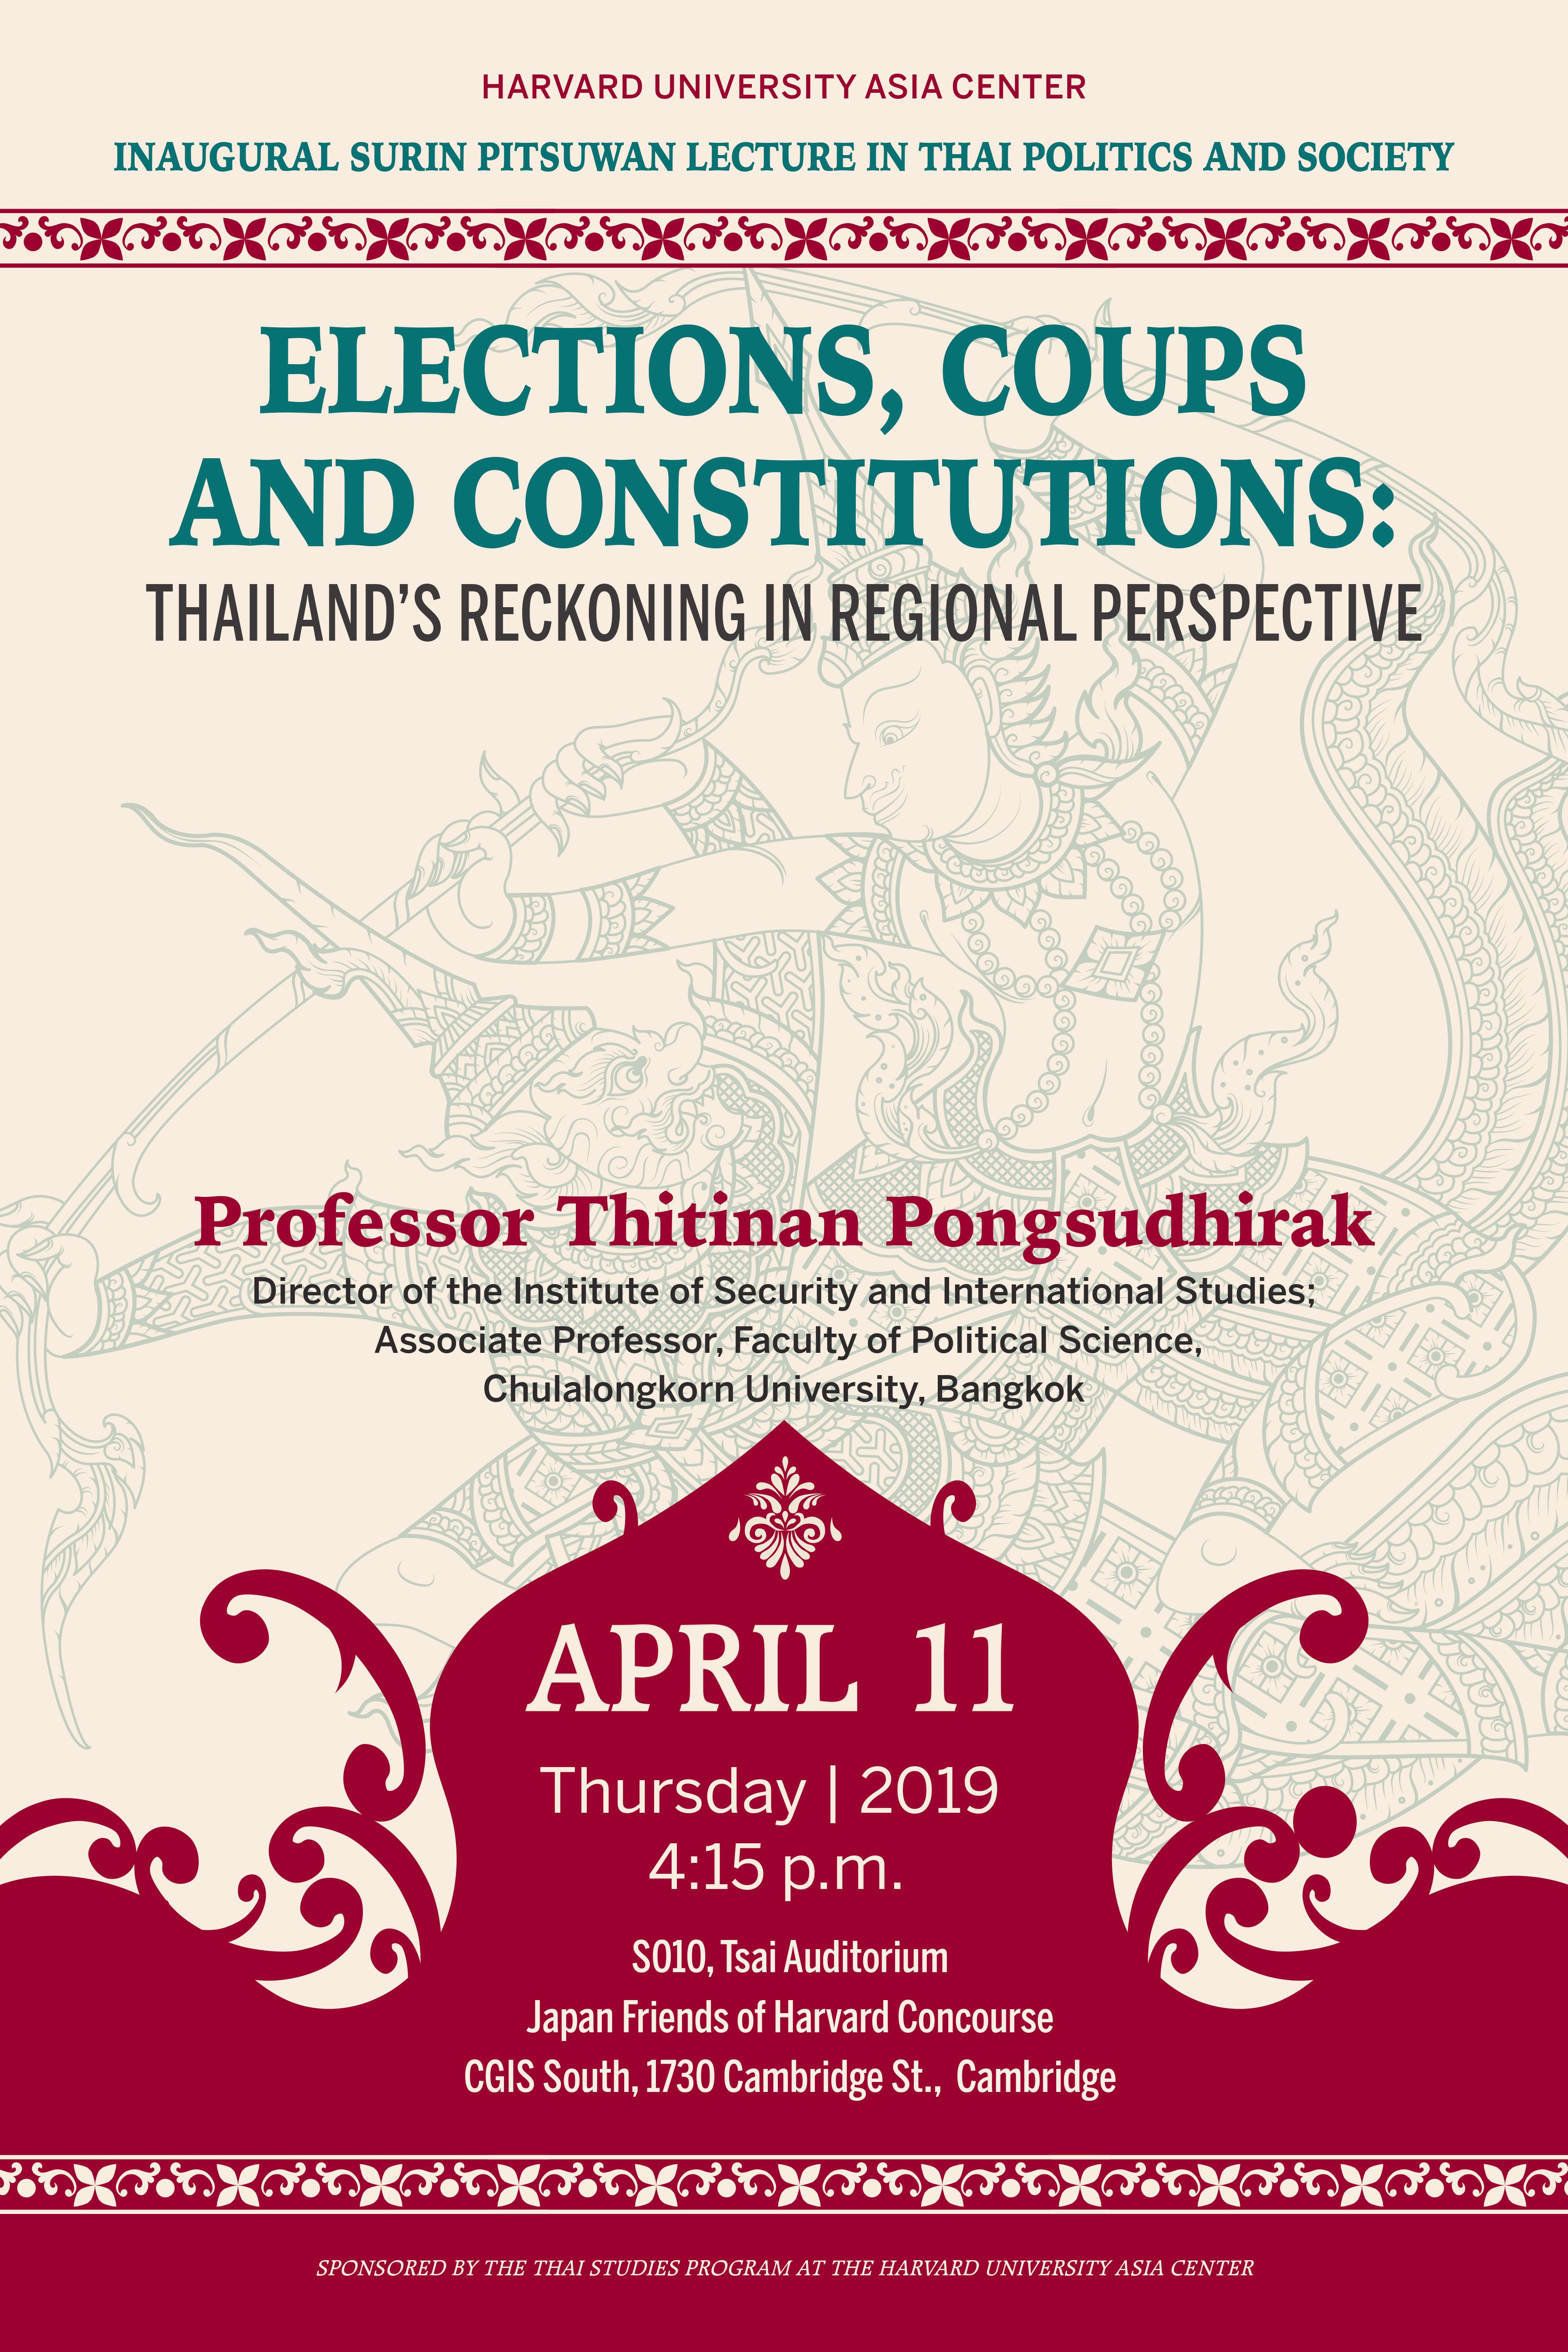 Surin Pitsuwan Lecture in Thai Politics and Society